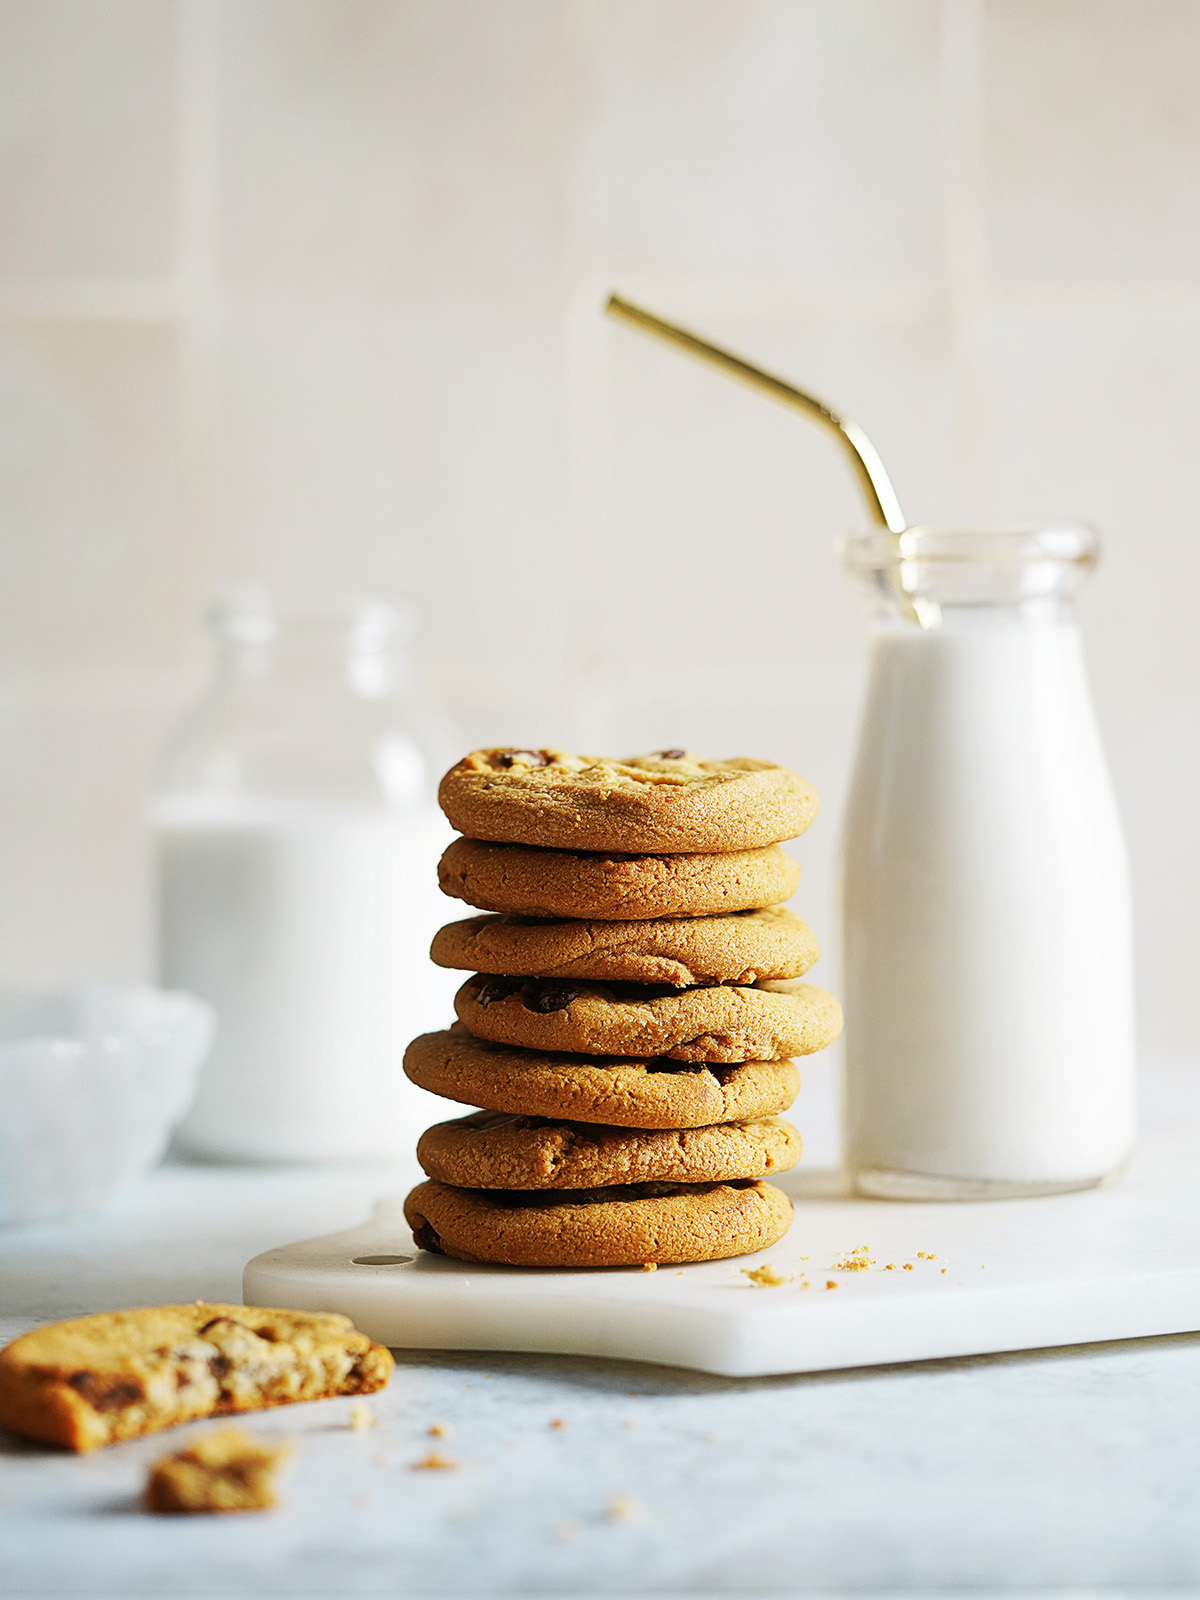 A stack of Chocolate Chip Cookies and a glass of milk on the side.